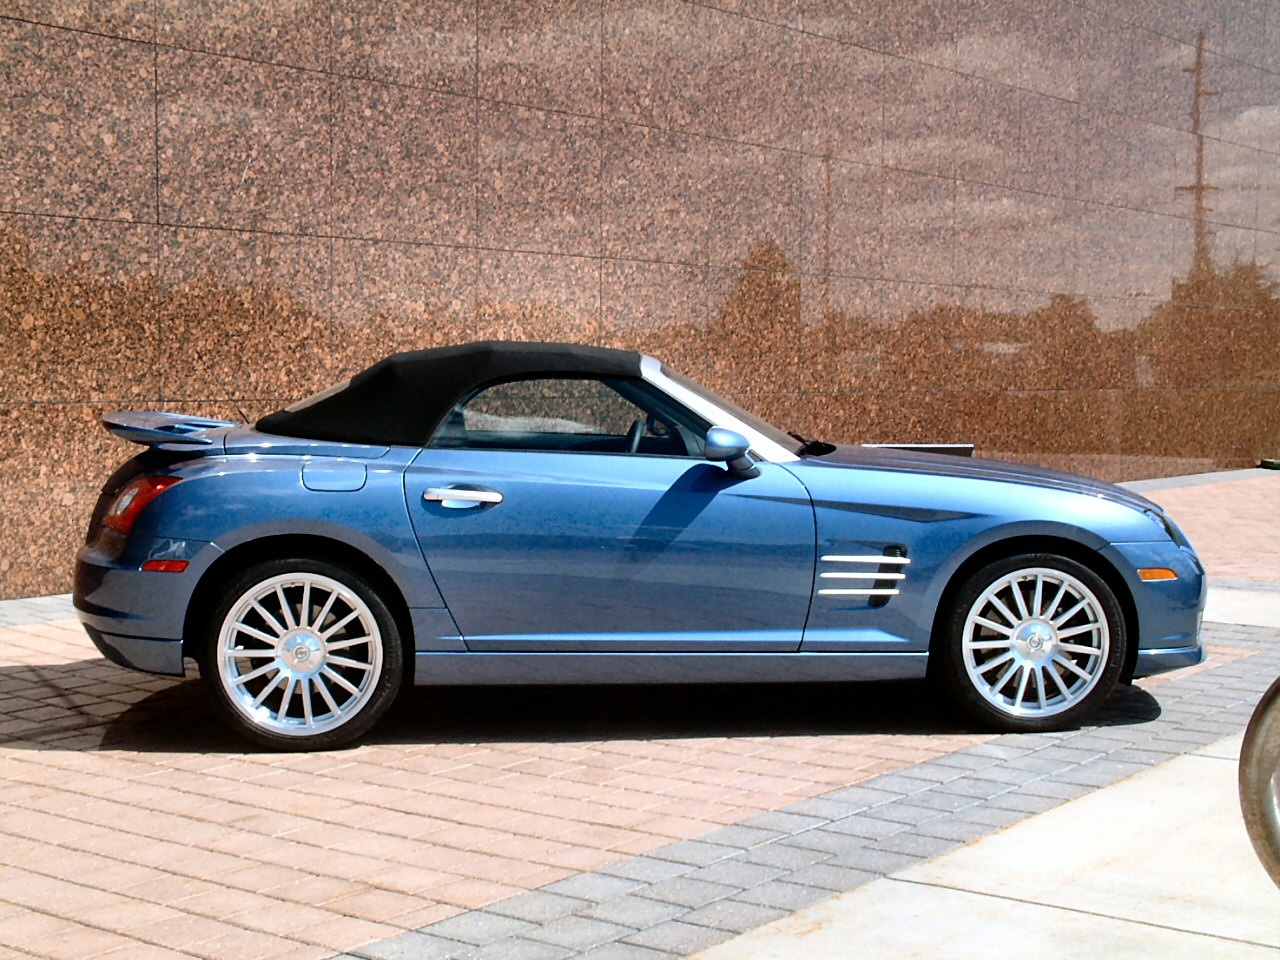 chrysler crossfire srt6 roadster picture 11 reviews news specs. Cars Review. Best American Auto & Cars Review